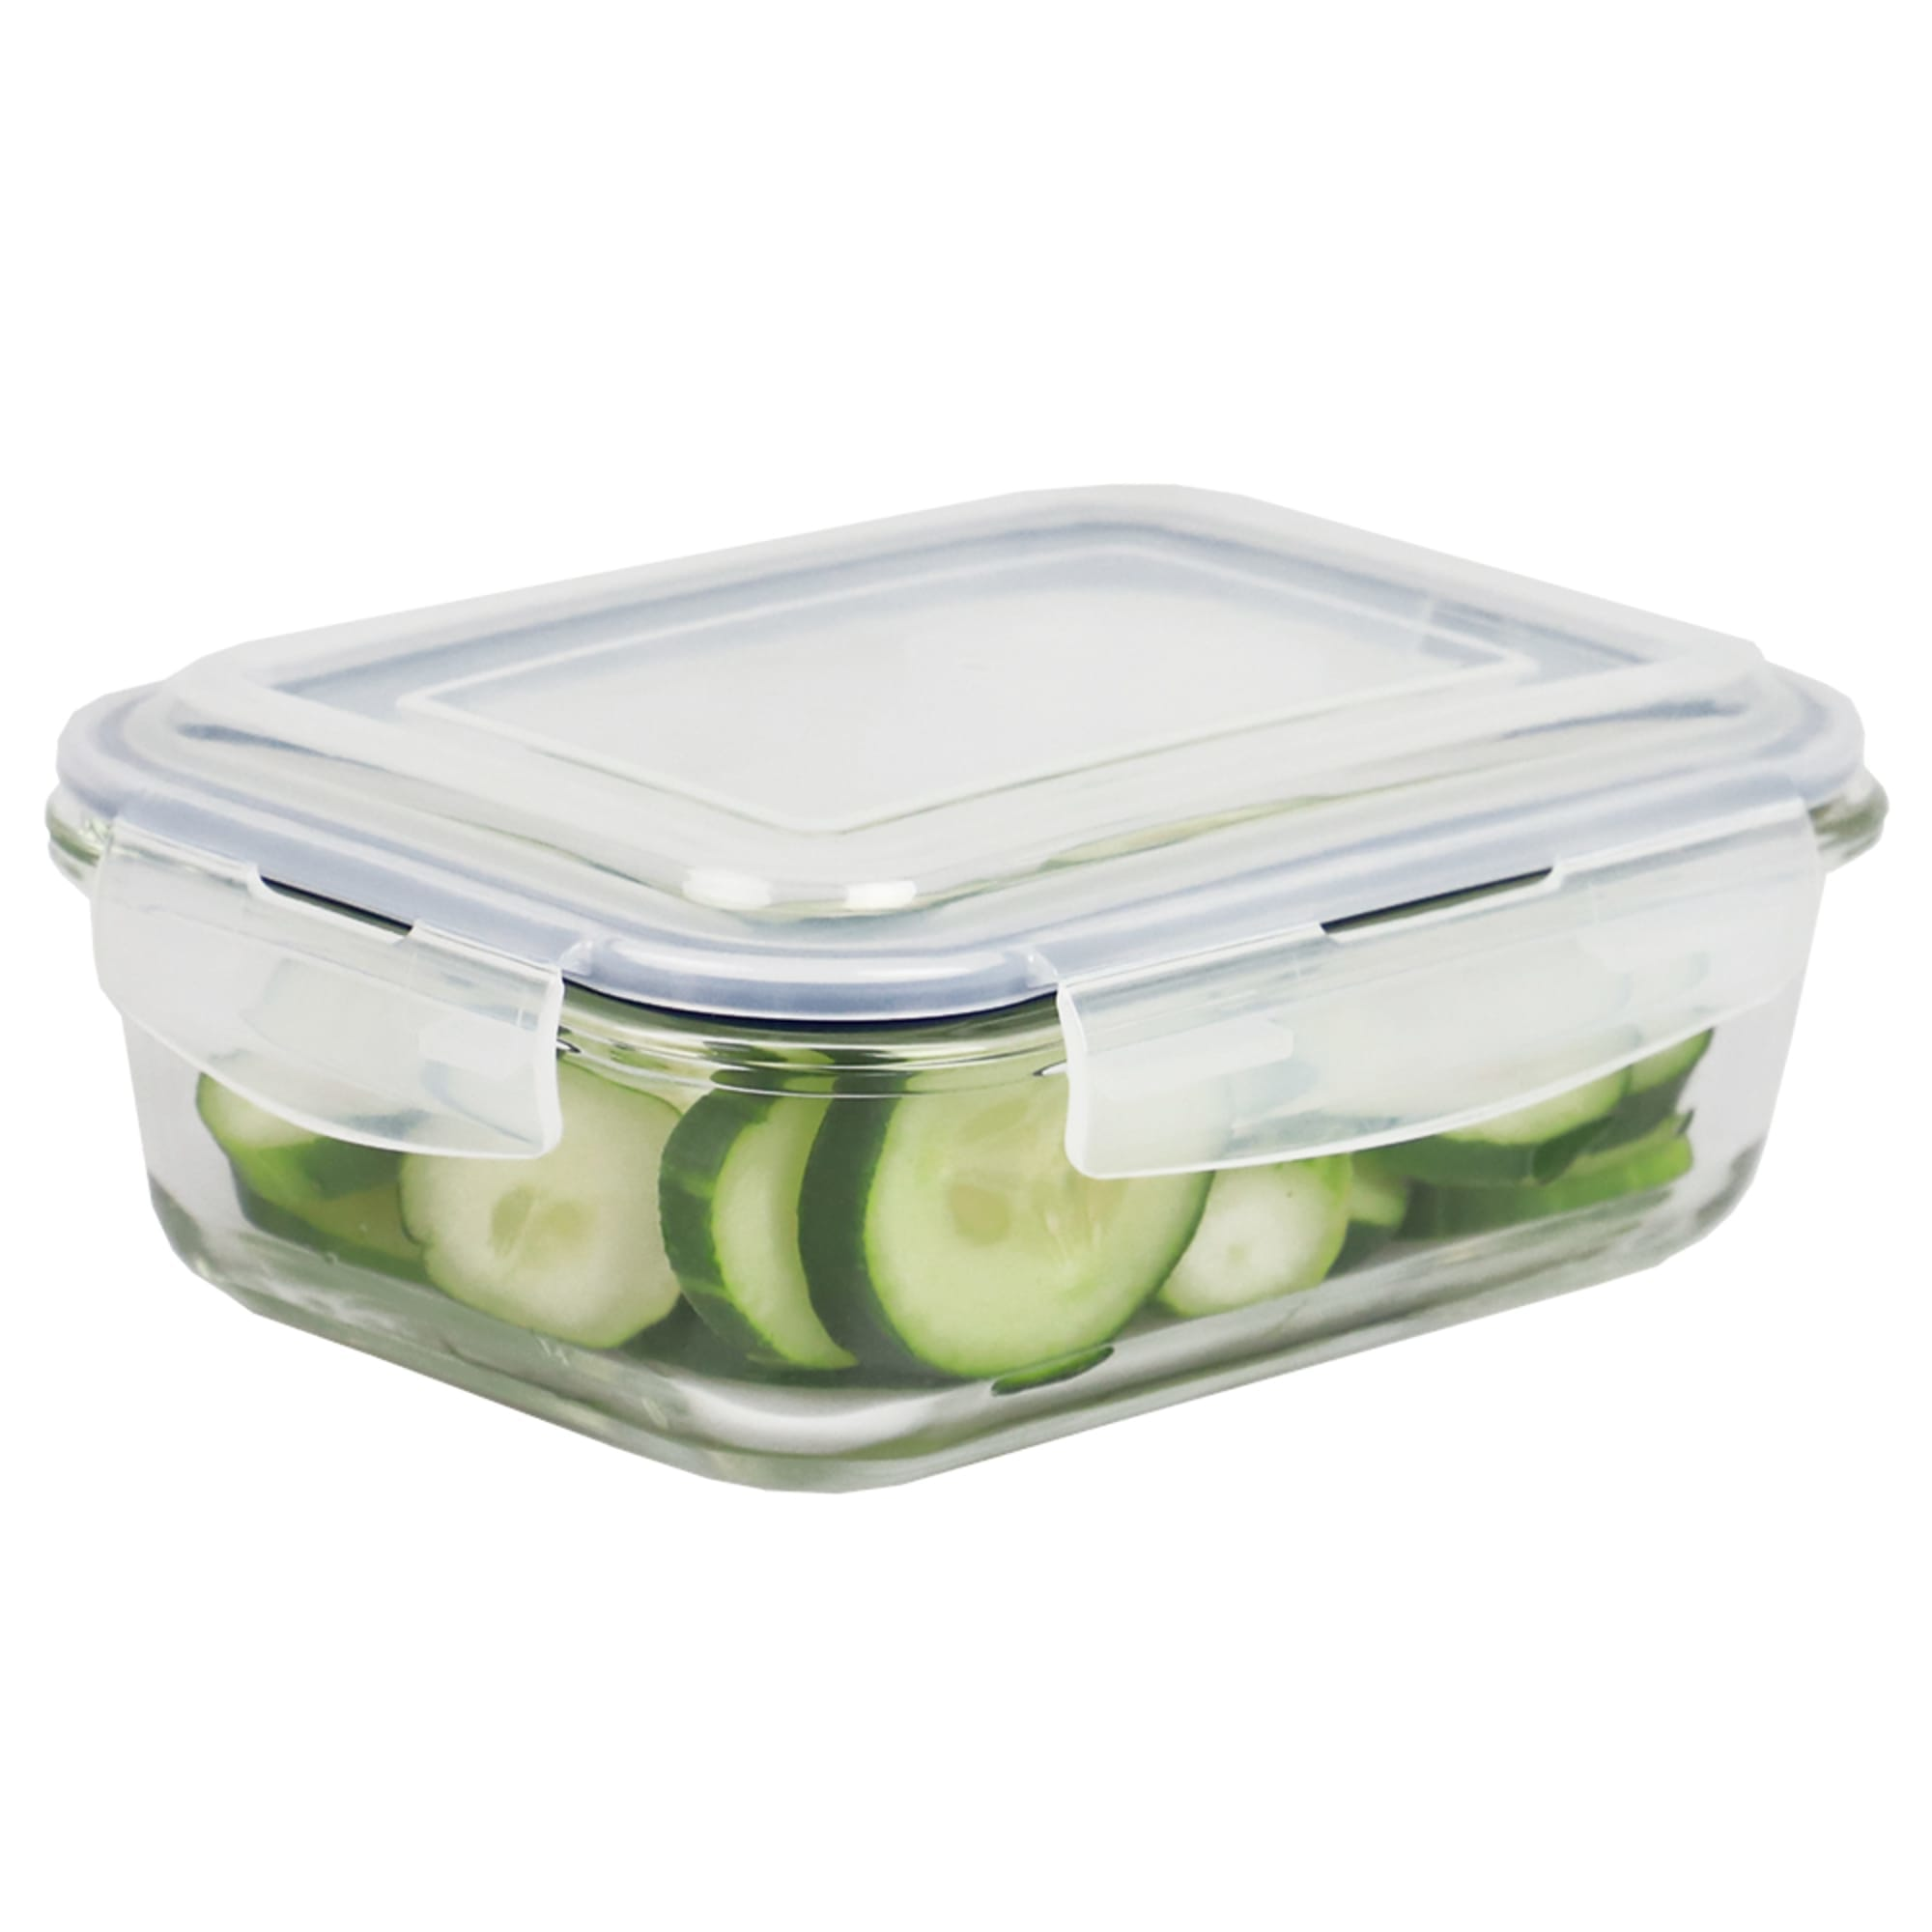 Michael Graves Design 35 Ounce High Borosilicate Glass Rectangle Food Storage Container with Indigo Rubber Seal